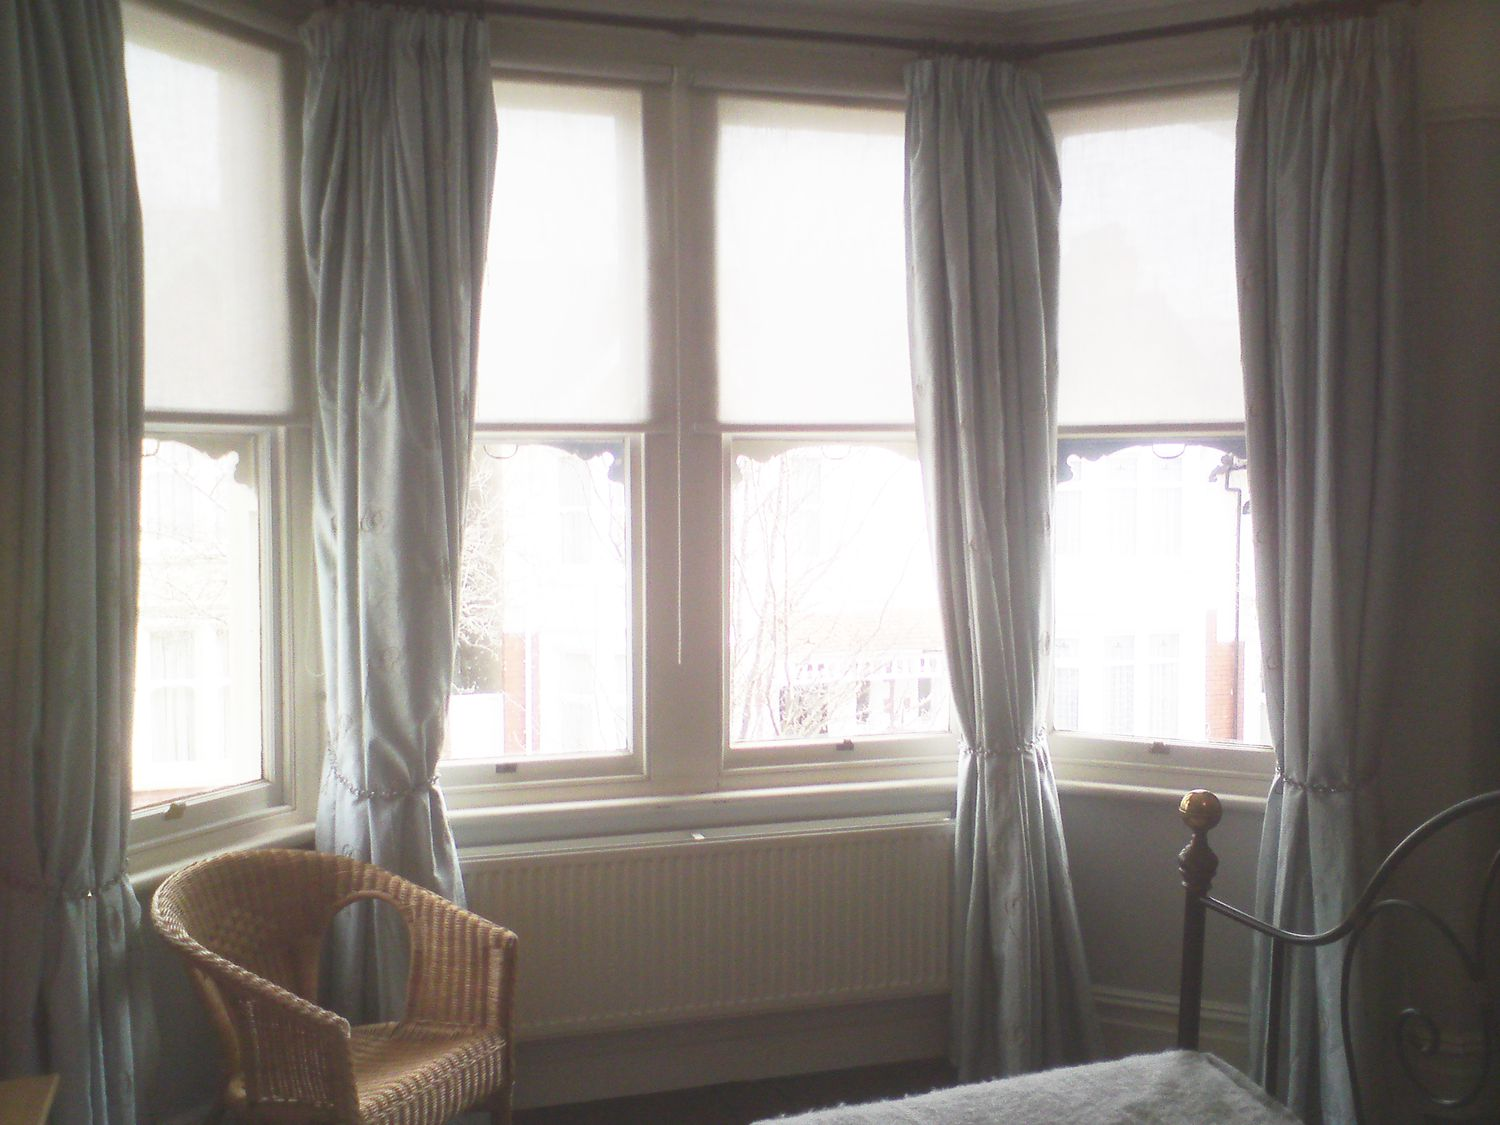 A view of the window with the original four curtains looking messy.